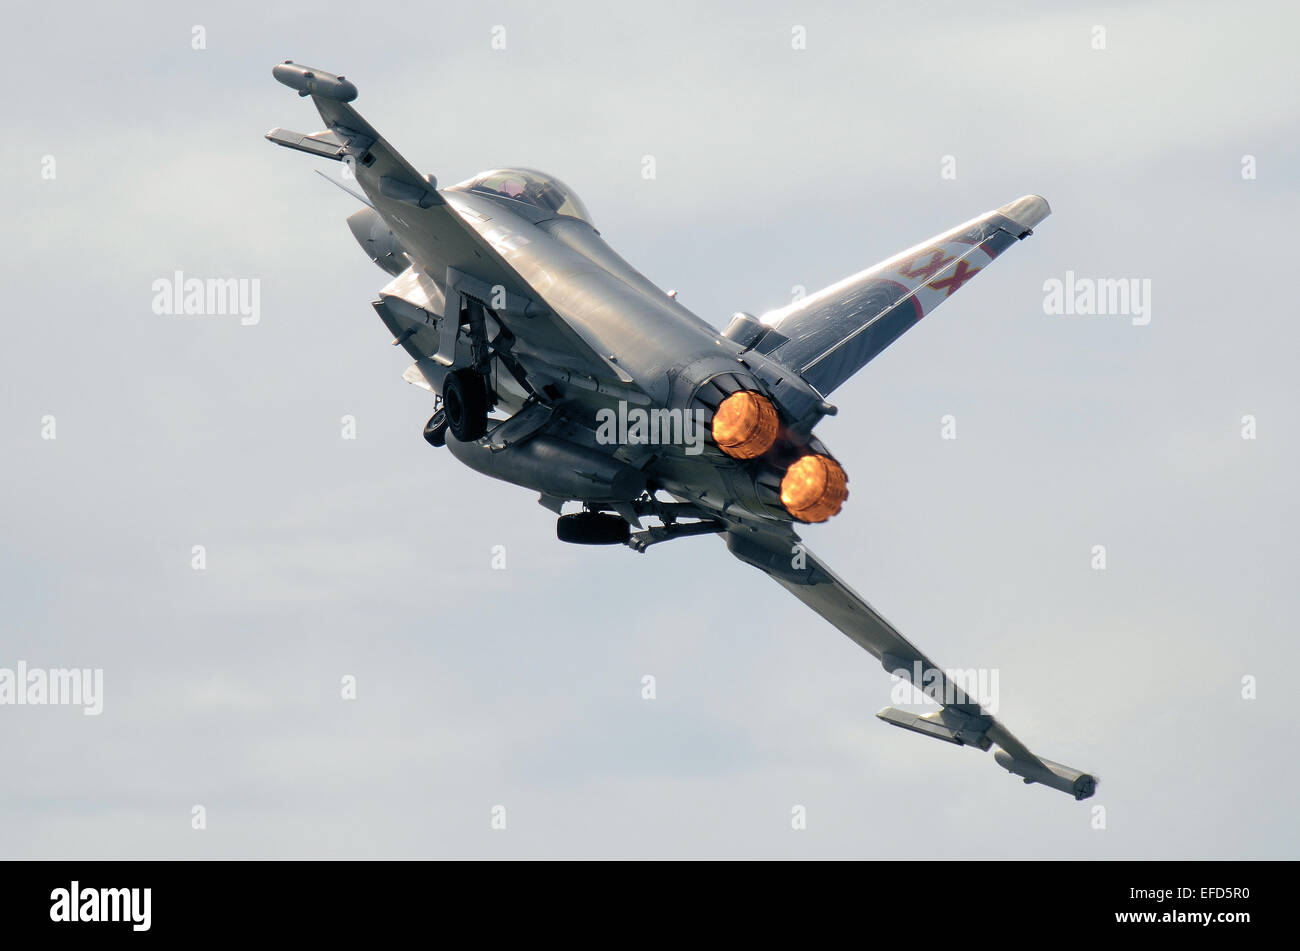 raf-typhoon-jet-fighter-of-29-squadron-badged-xxx-taking-off-in-full-EFD5R0.jpg